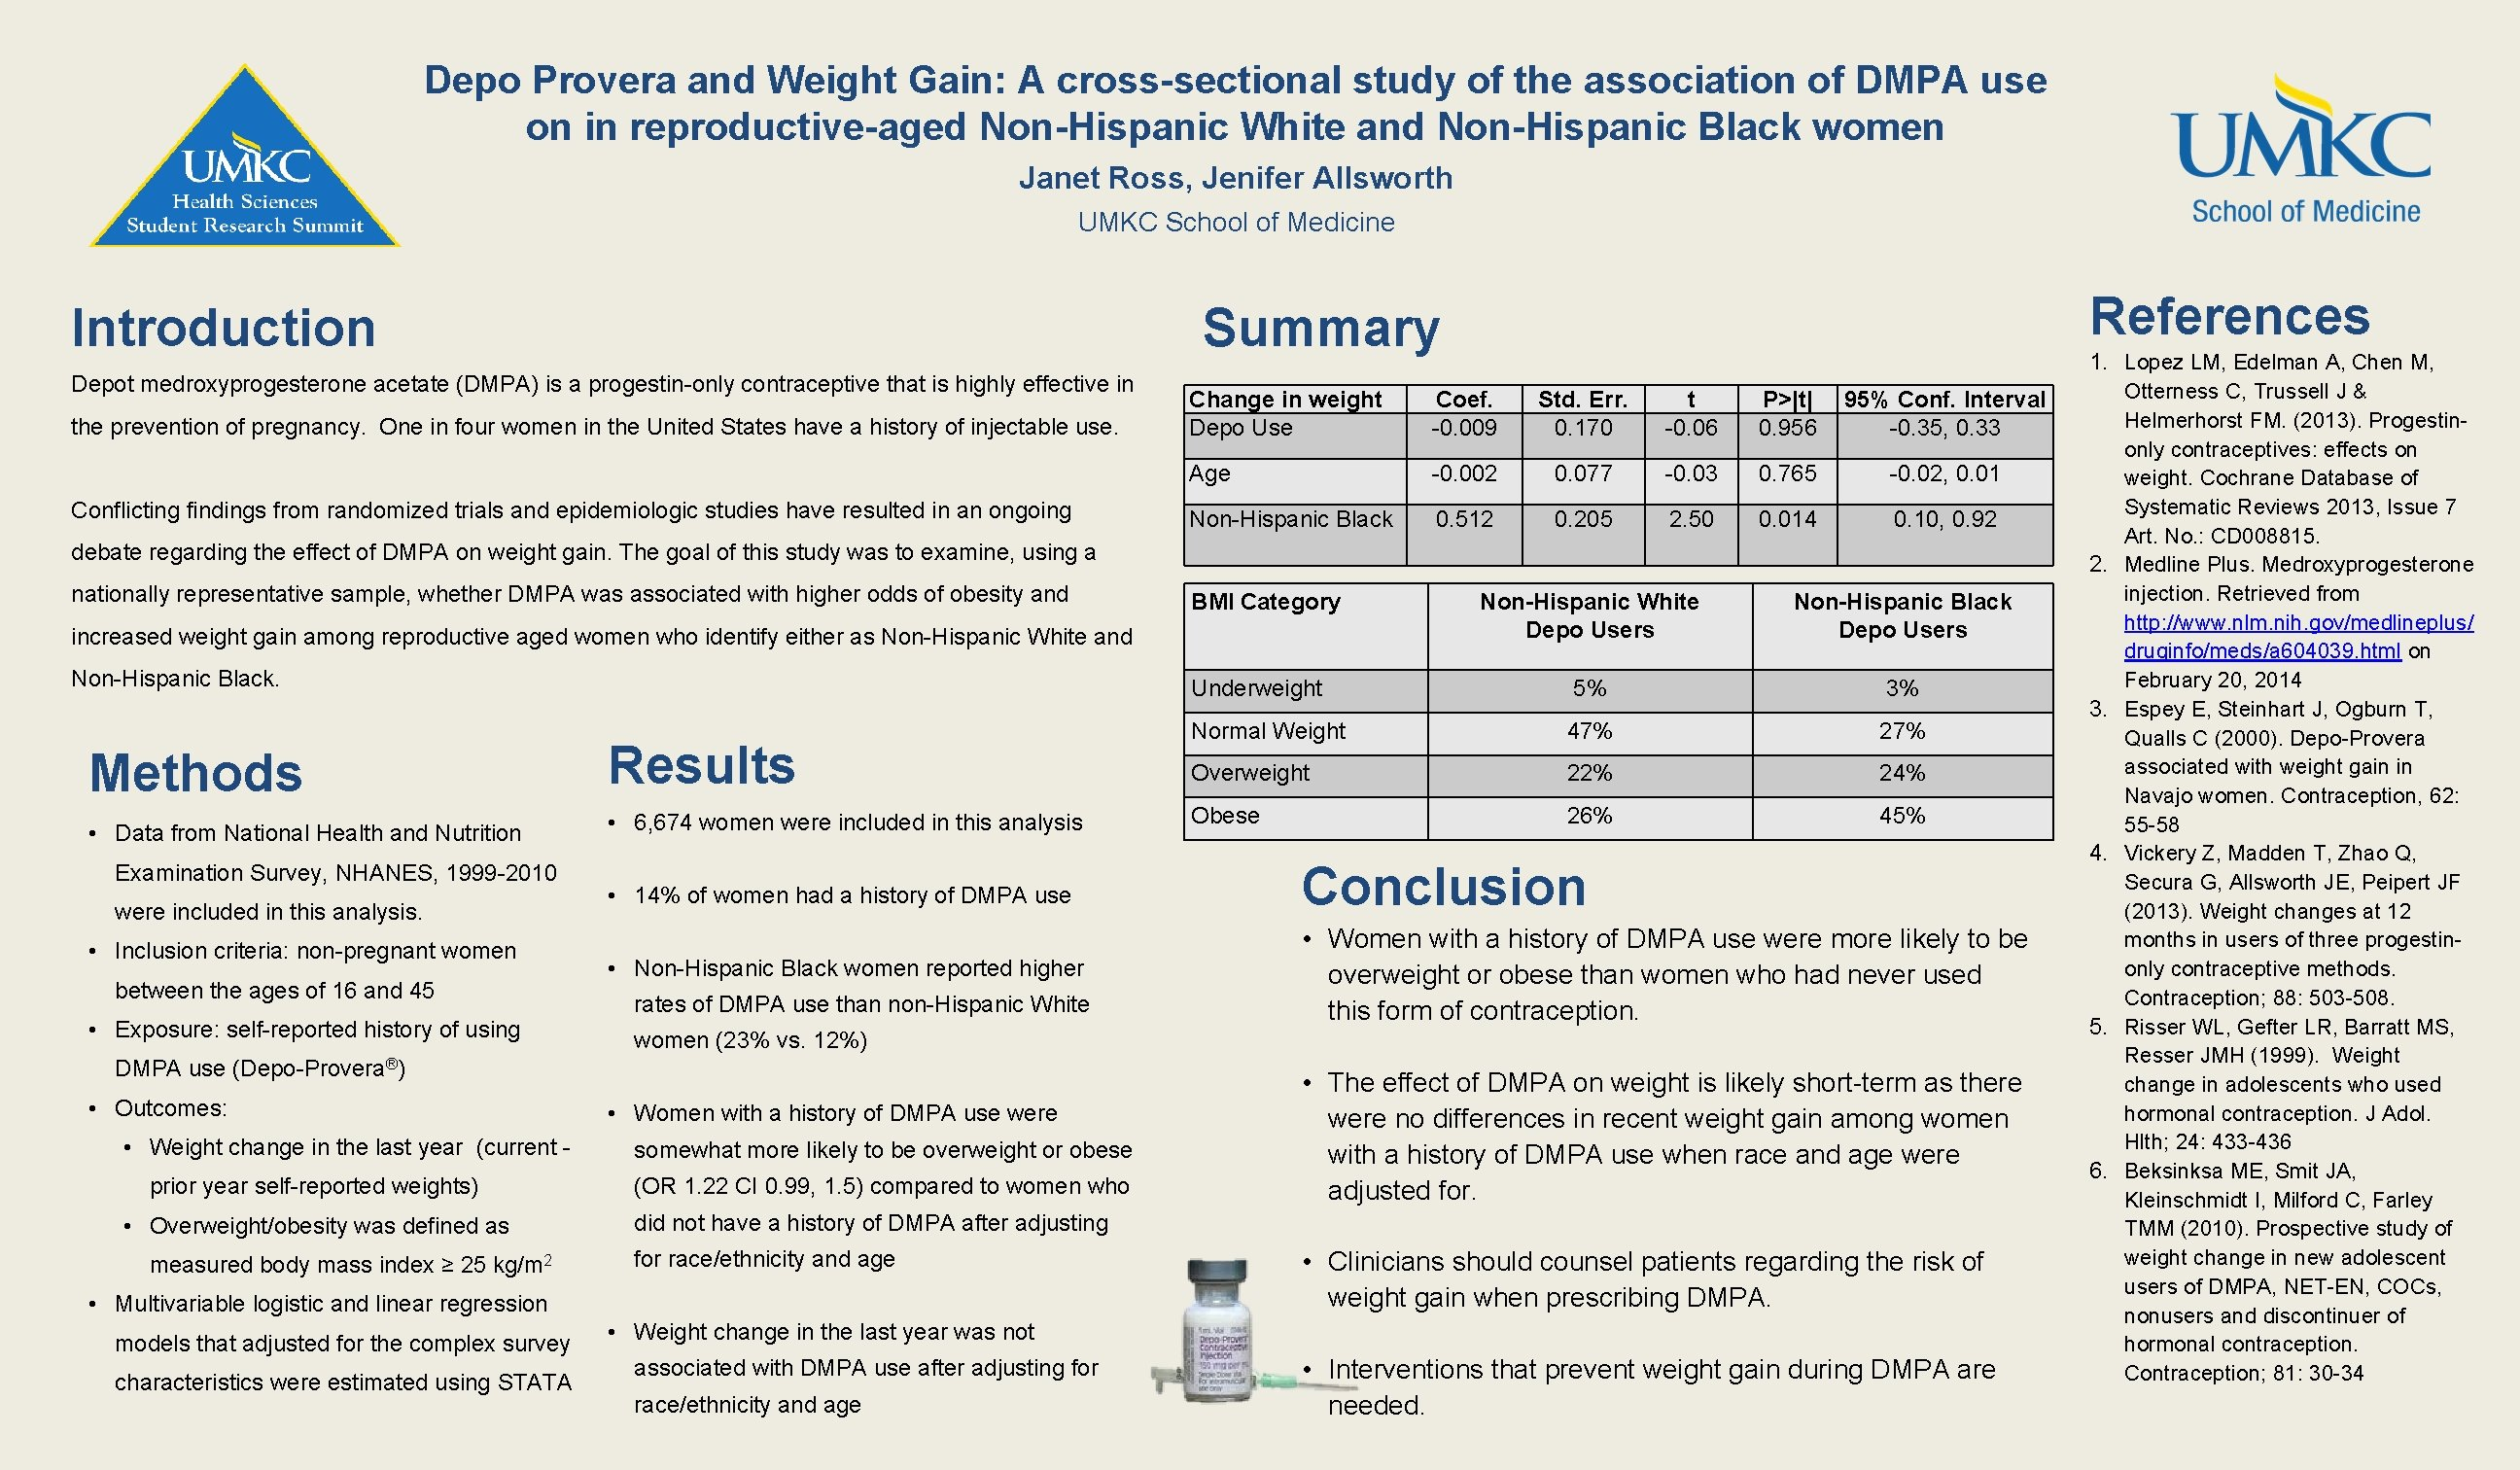 Depo Provera and Weight Gain: A cross-sectional study of the association of DMPA use